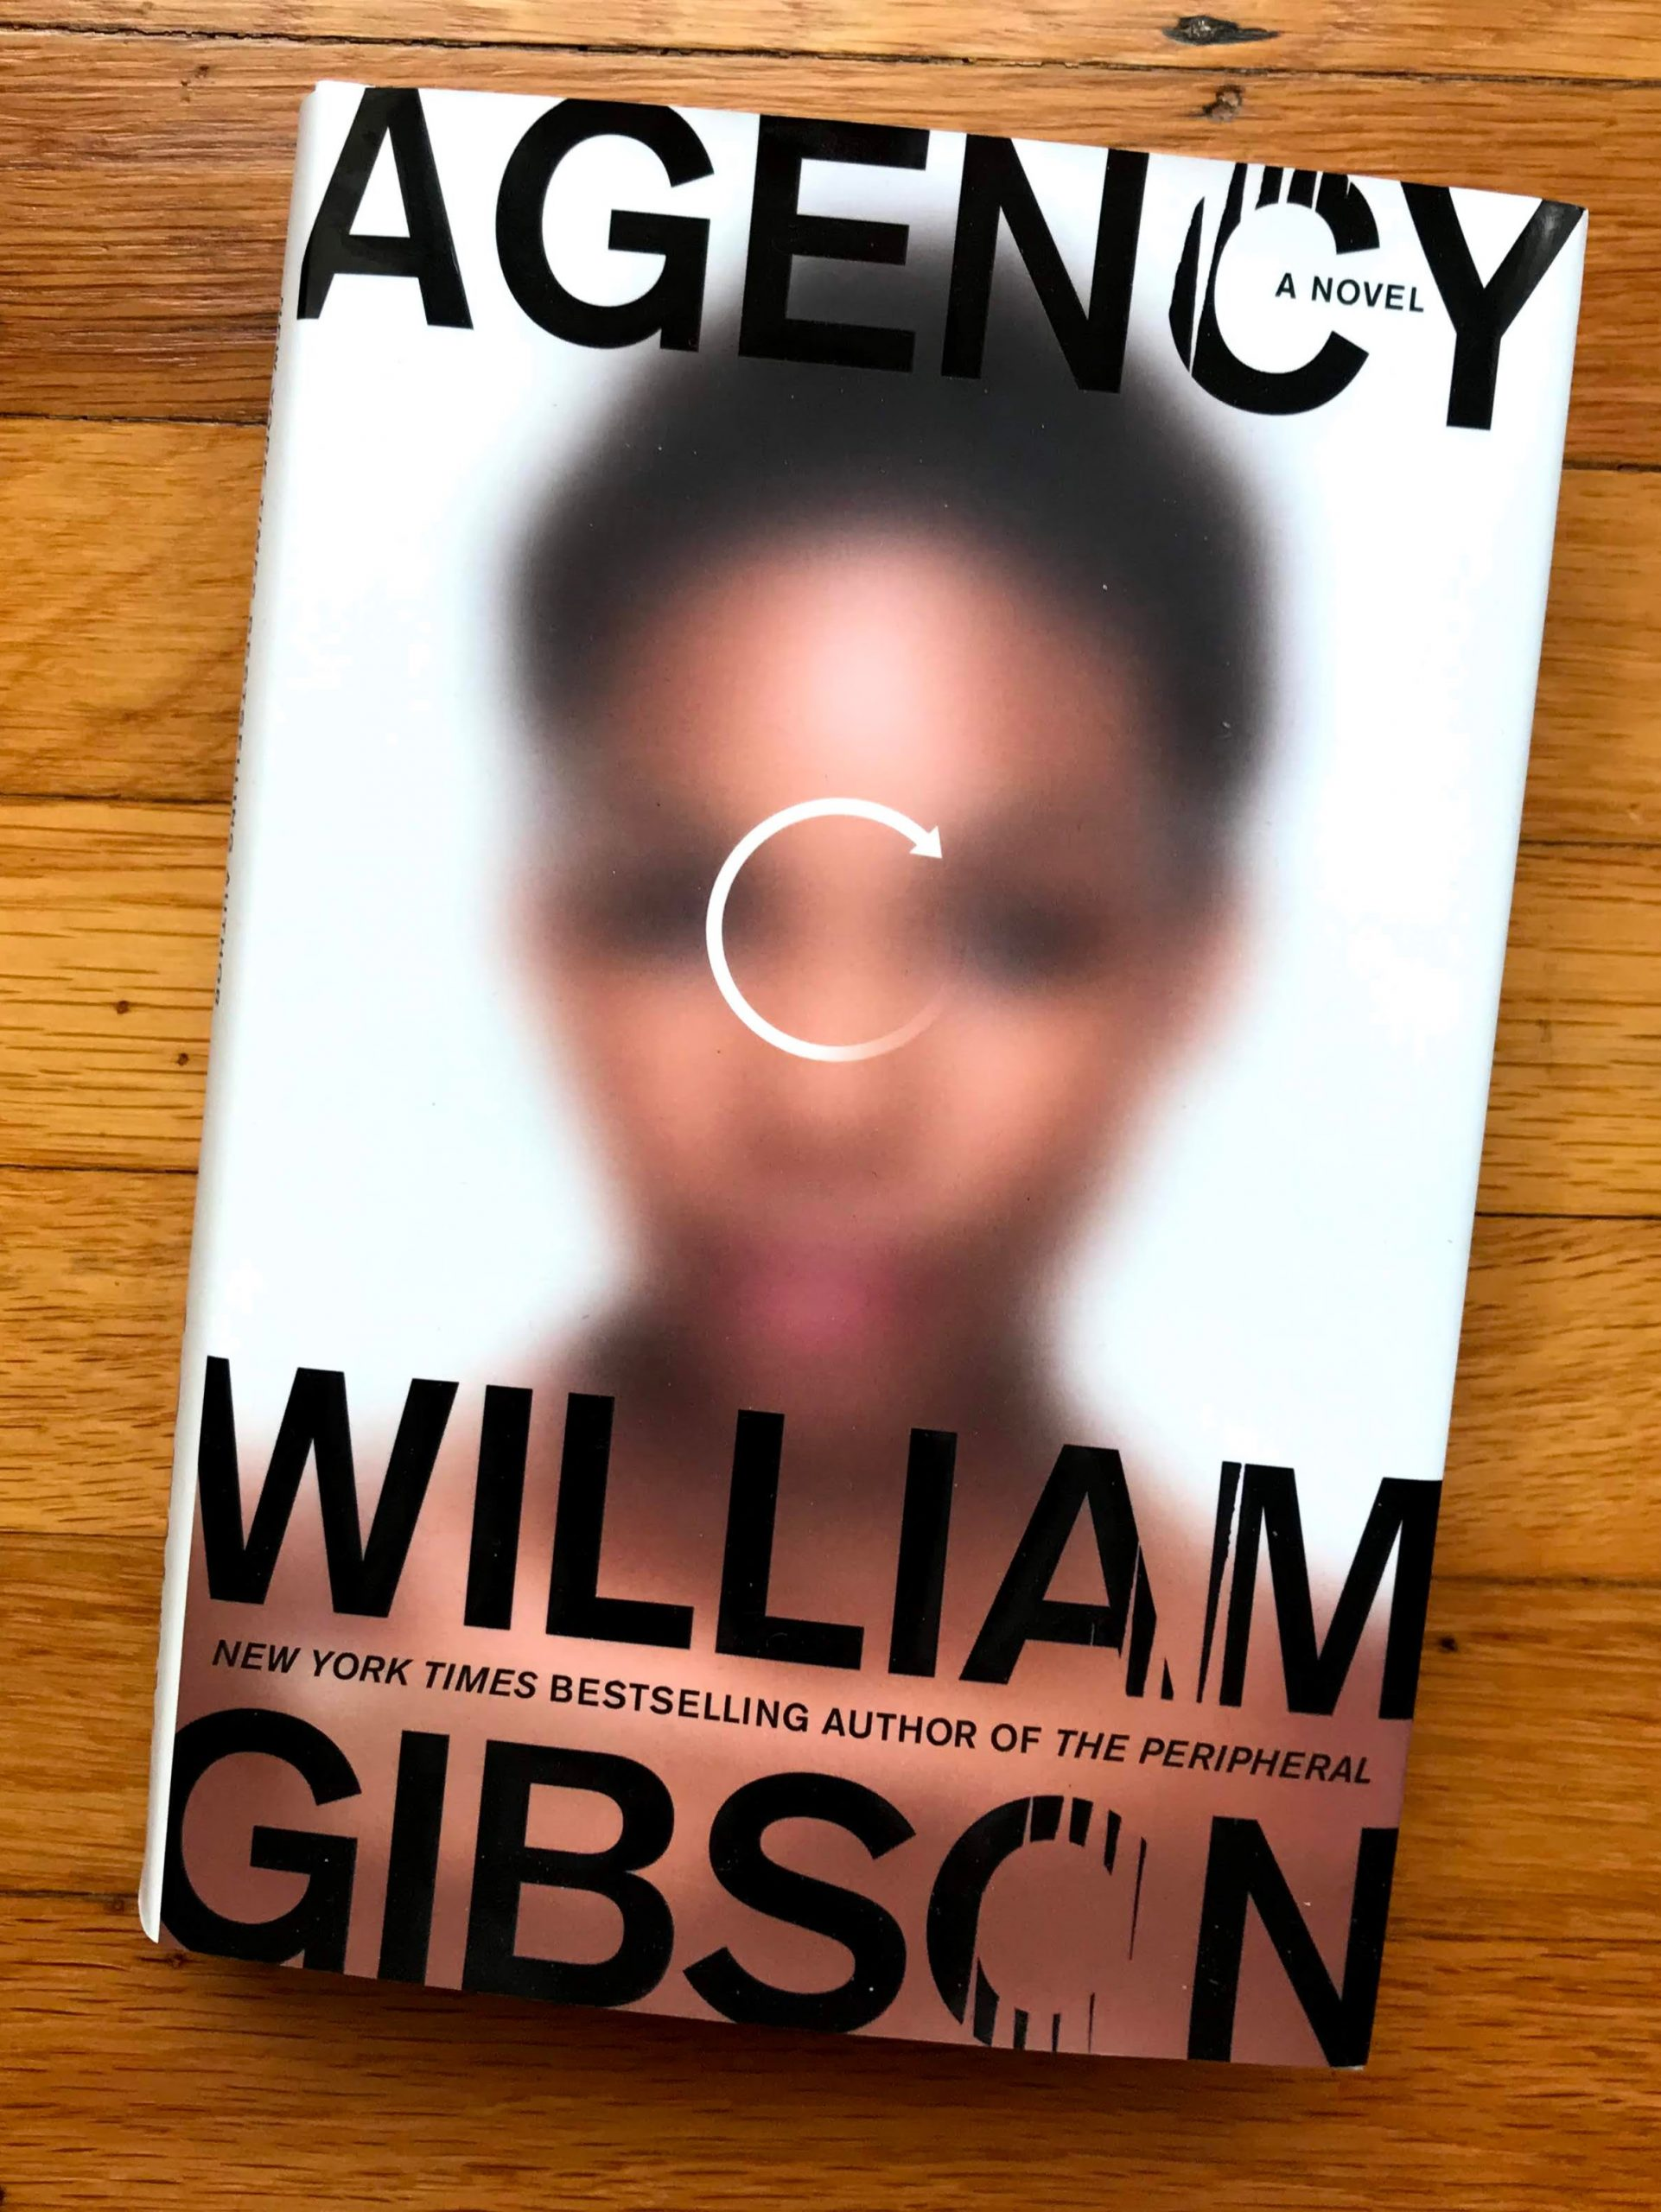 Cover of the novel Agency, by William Gibson